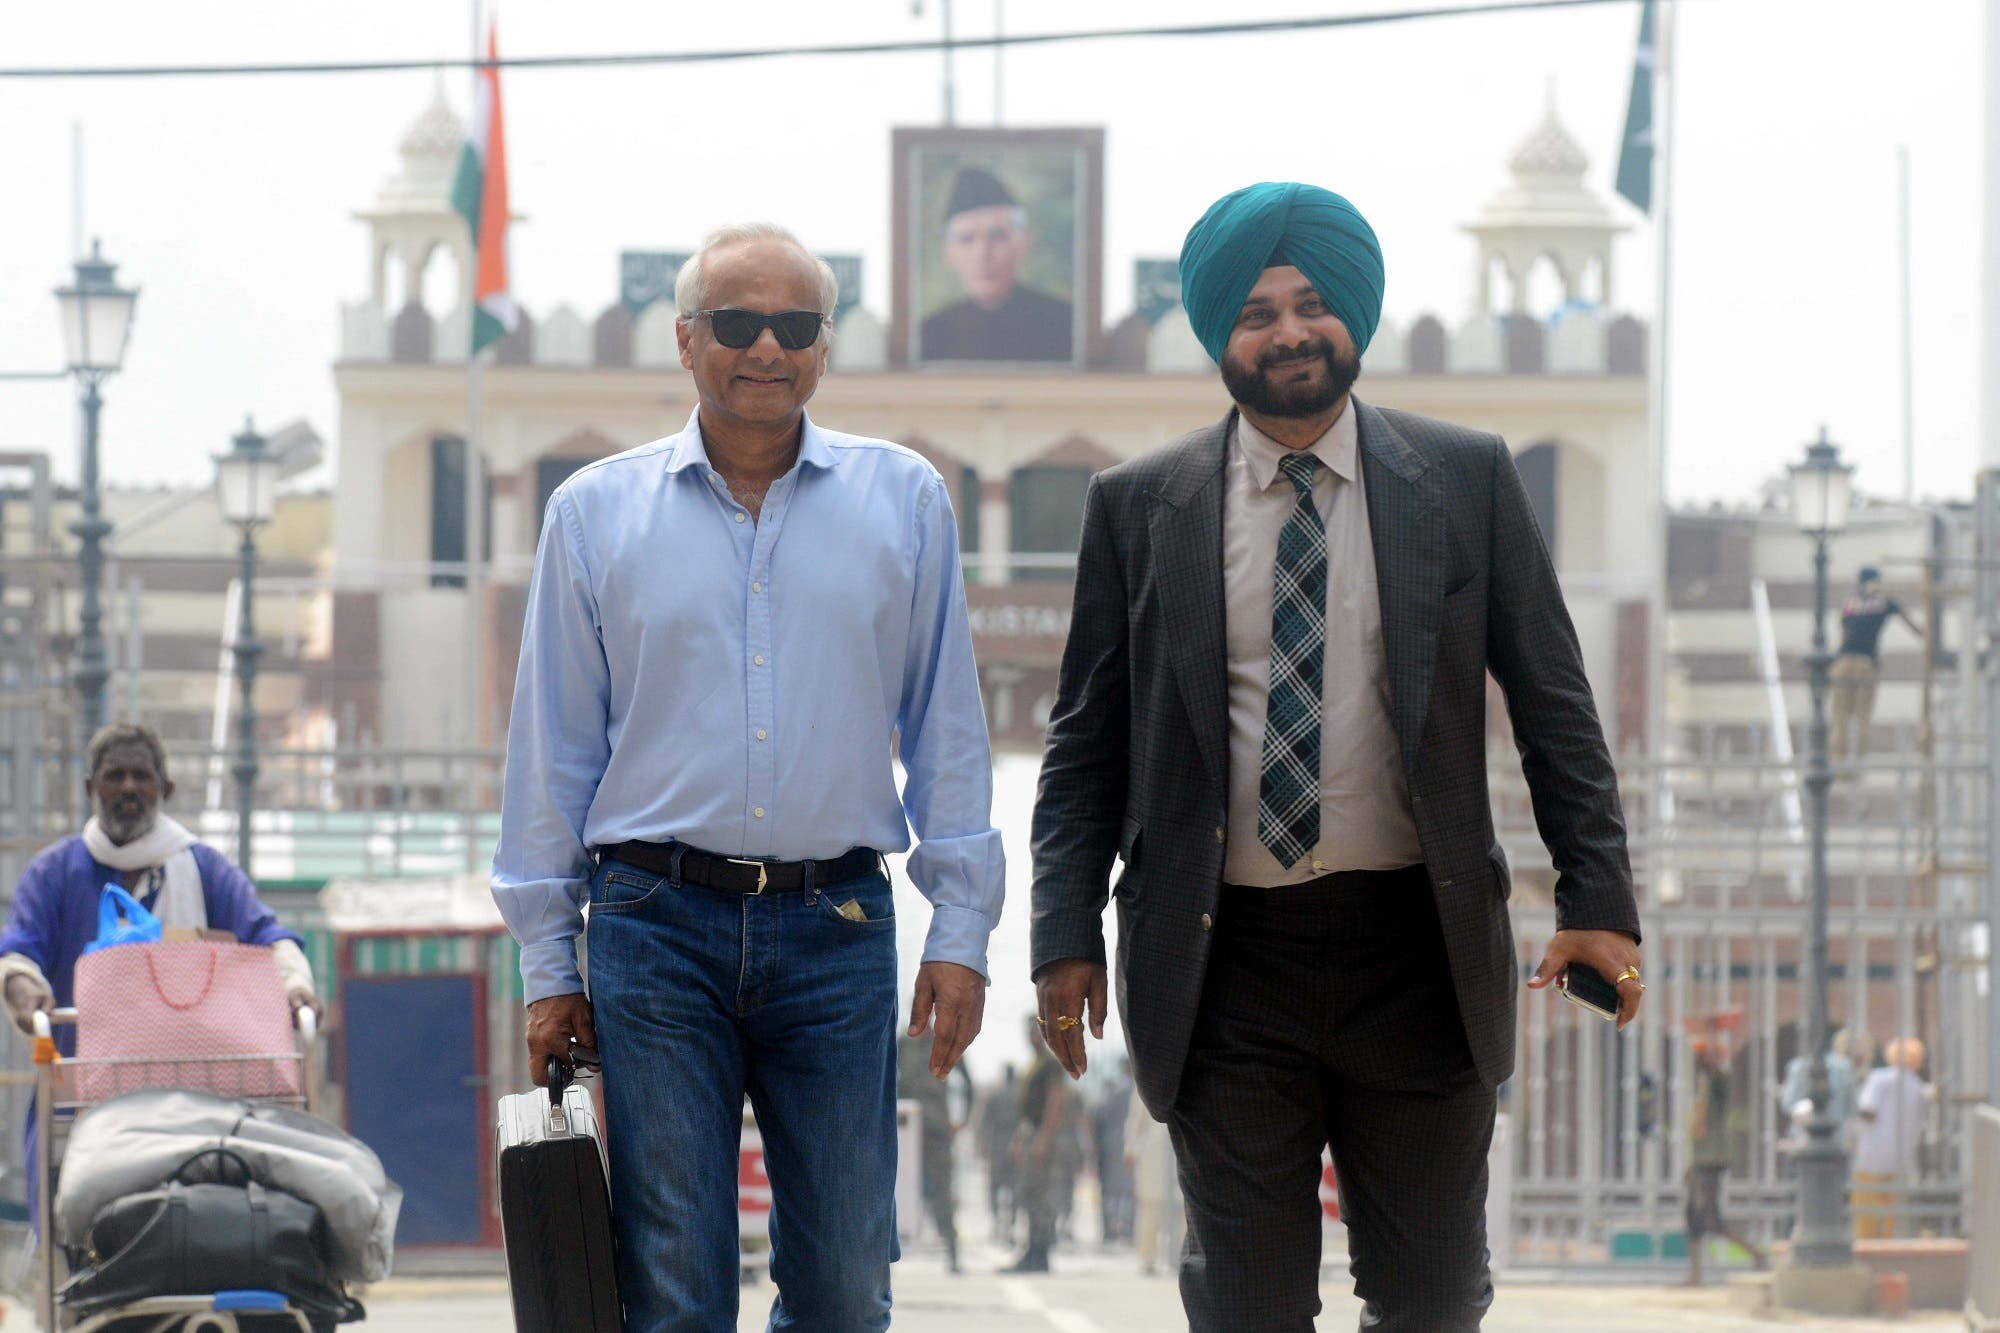 Navjot Singh Sidhu, and Vikram Singh Mehta (L), a friend of Pakistani Prime Minister Imran Khan, cross the India-Pakistan border in Wagah, on August 19, 2018. (AFP)